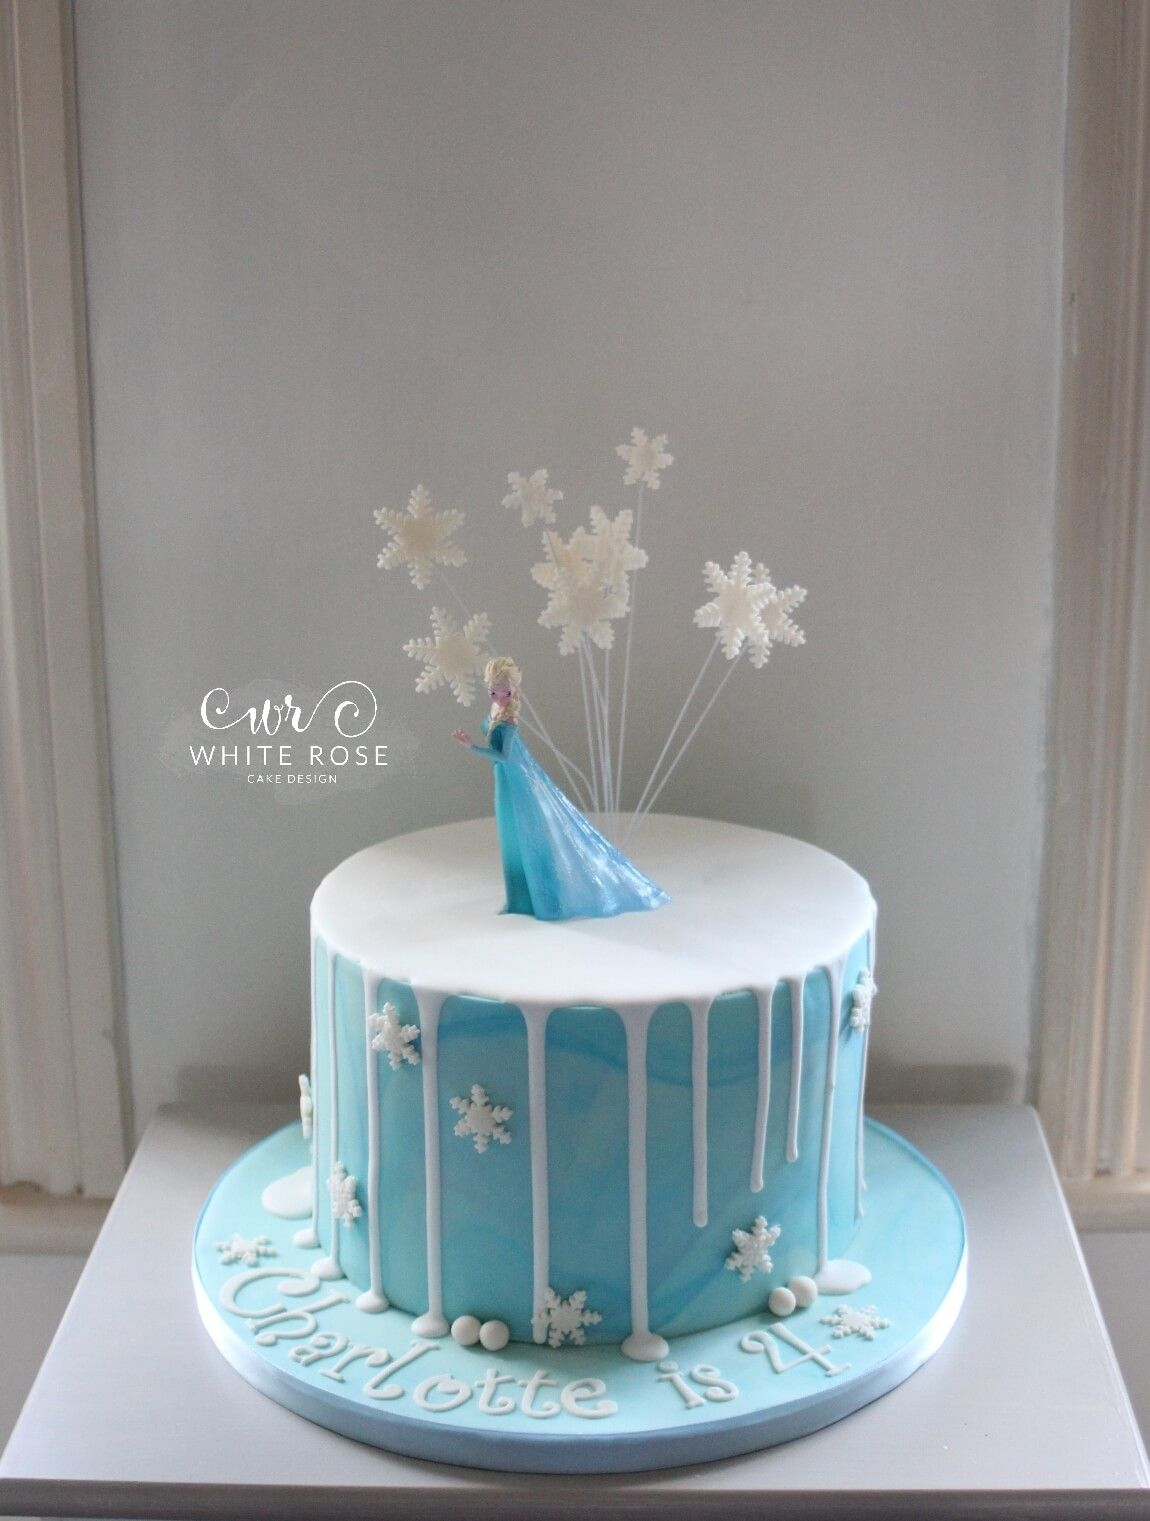 Birthday Cakes, Christening Cakes and Other Celebration Cakes in West Yorkshire